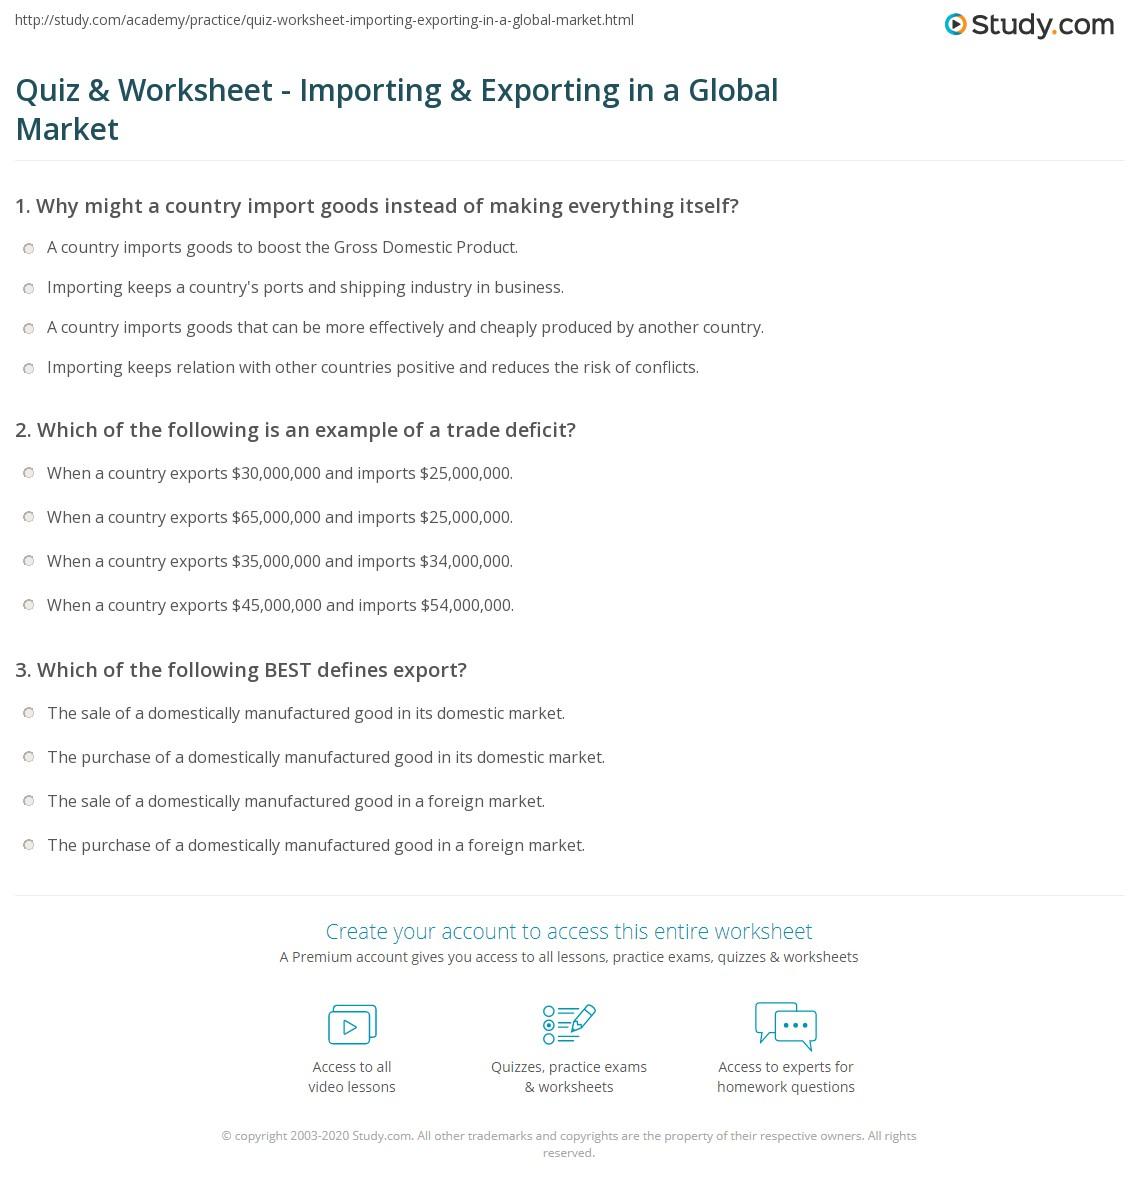 Quiz & Worksheet - Importing & Exporting in a Global Market